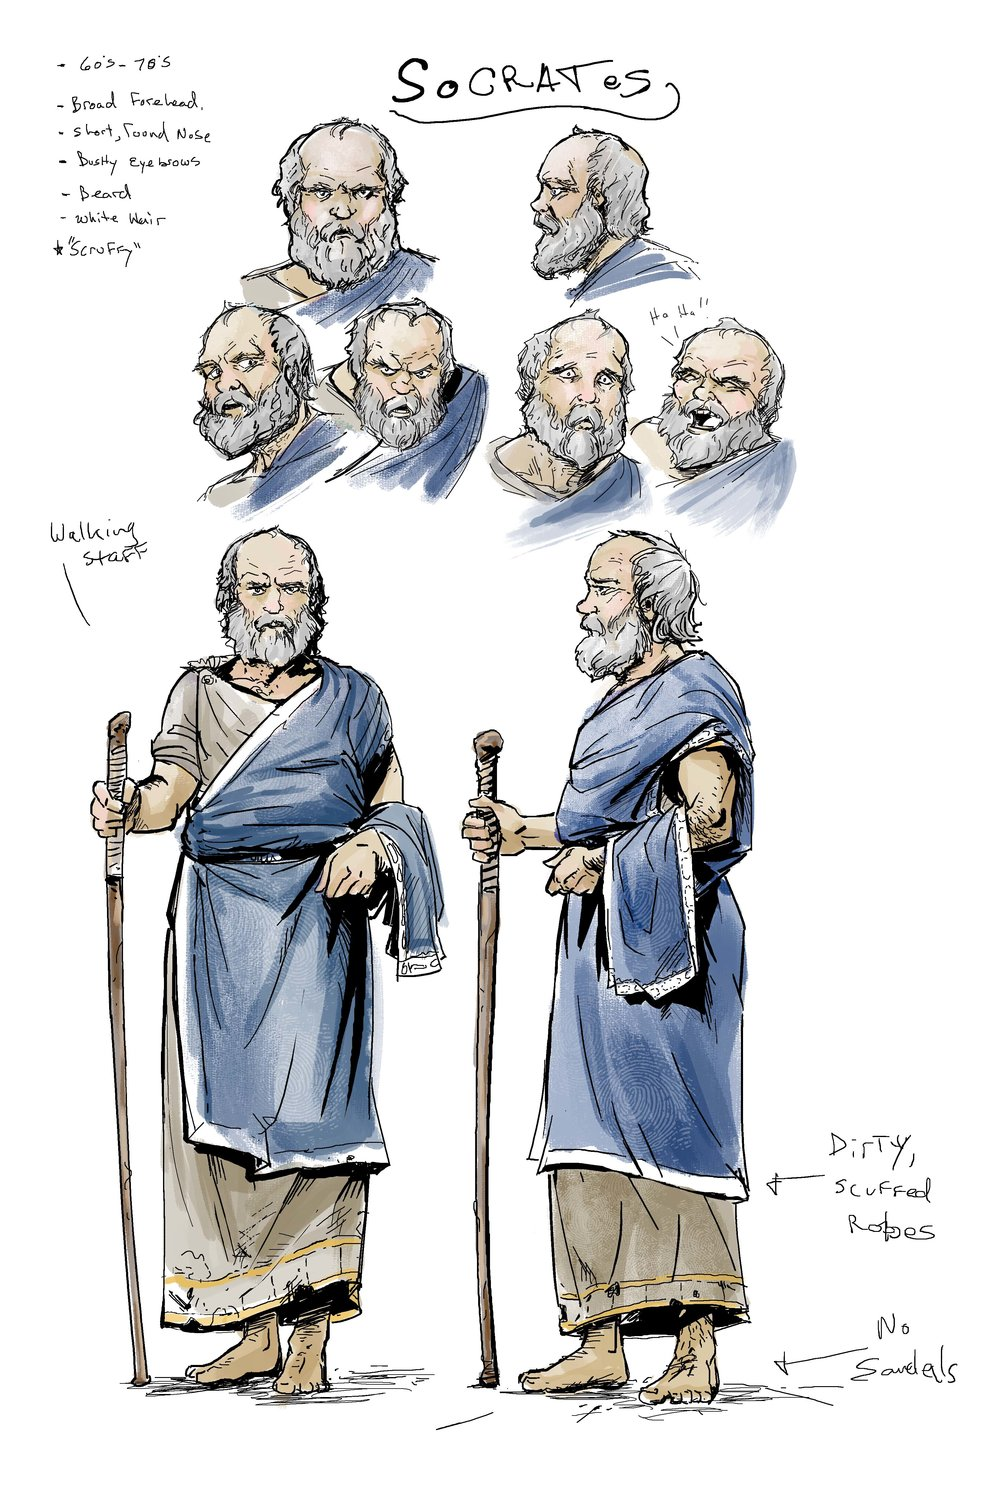 The irascible Socrates.